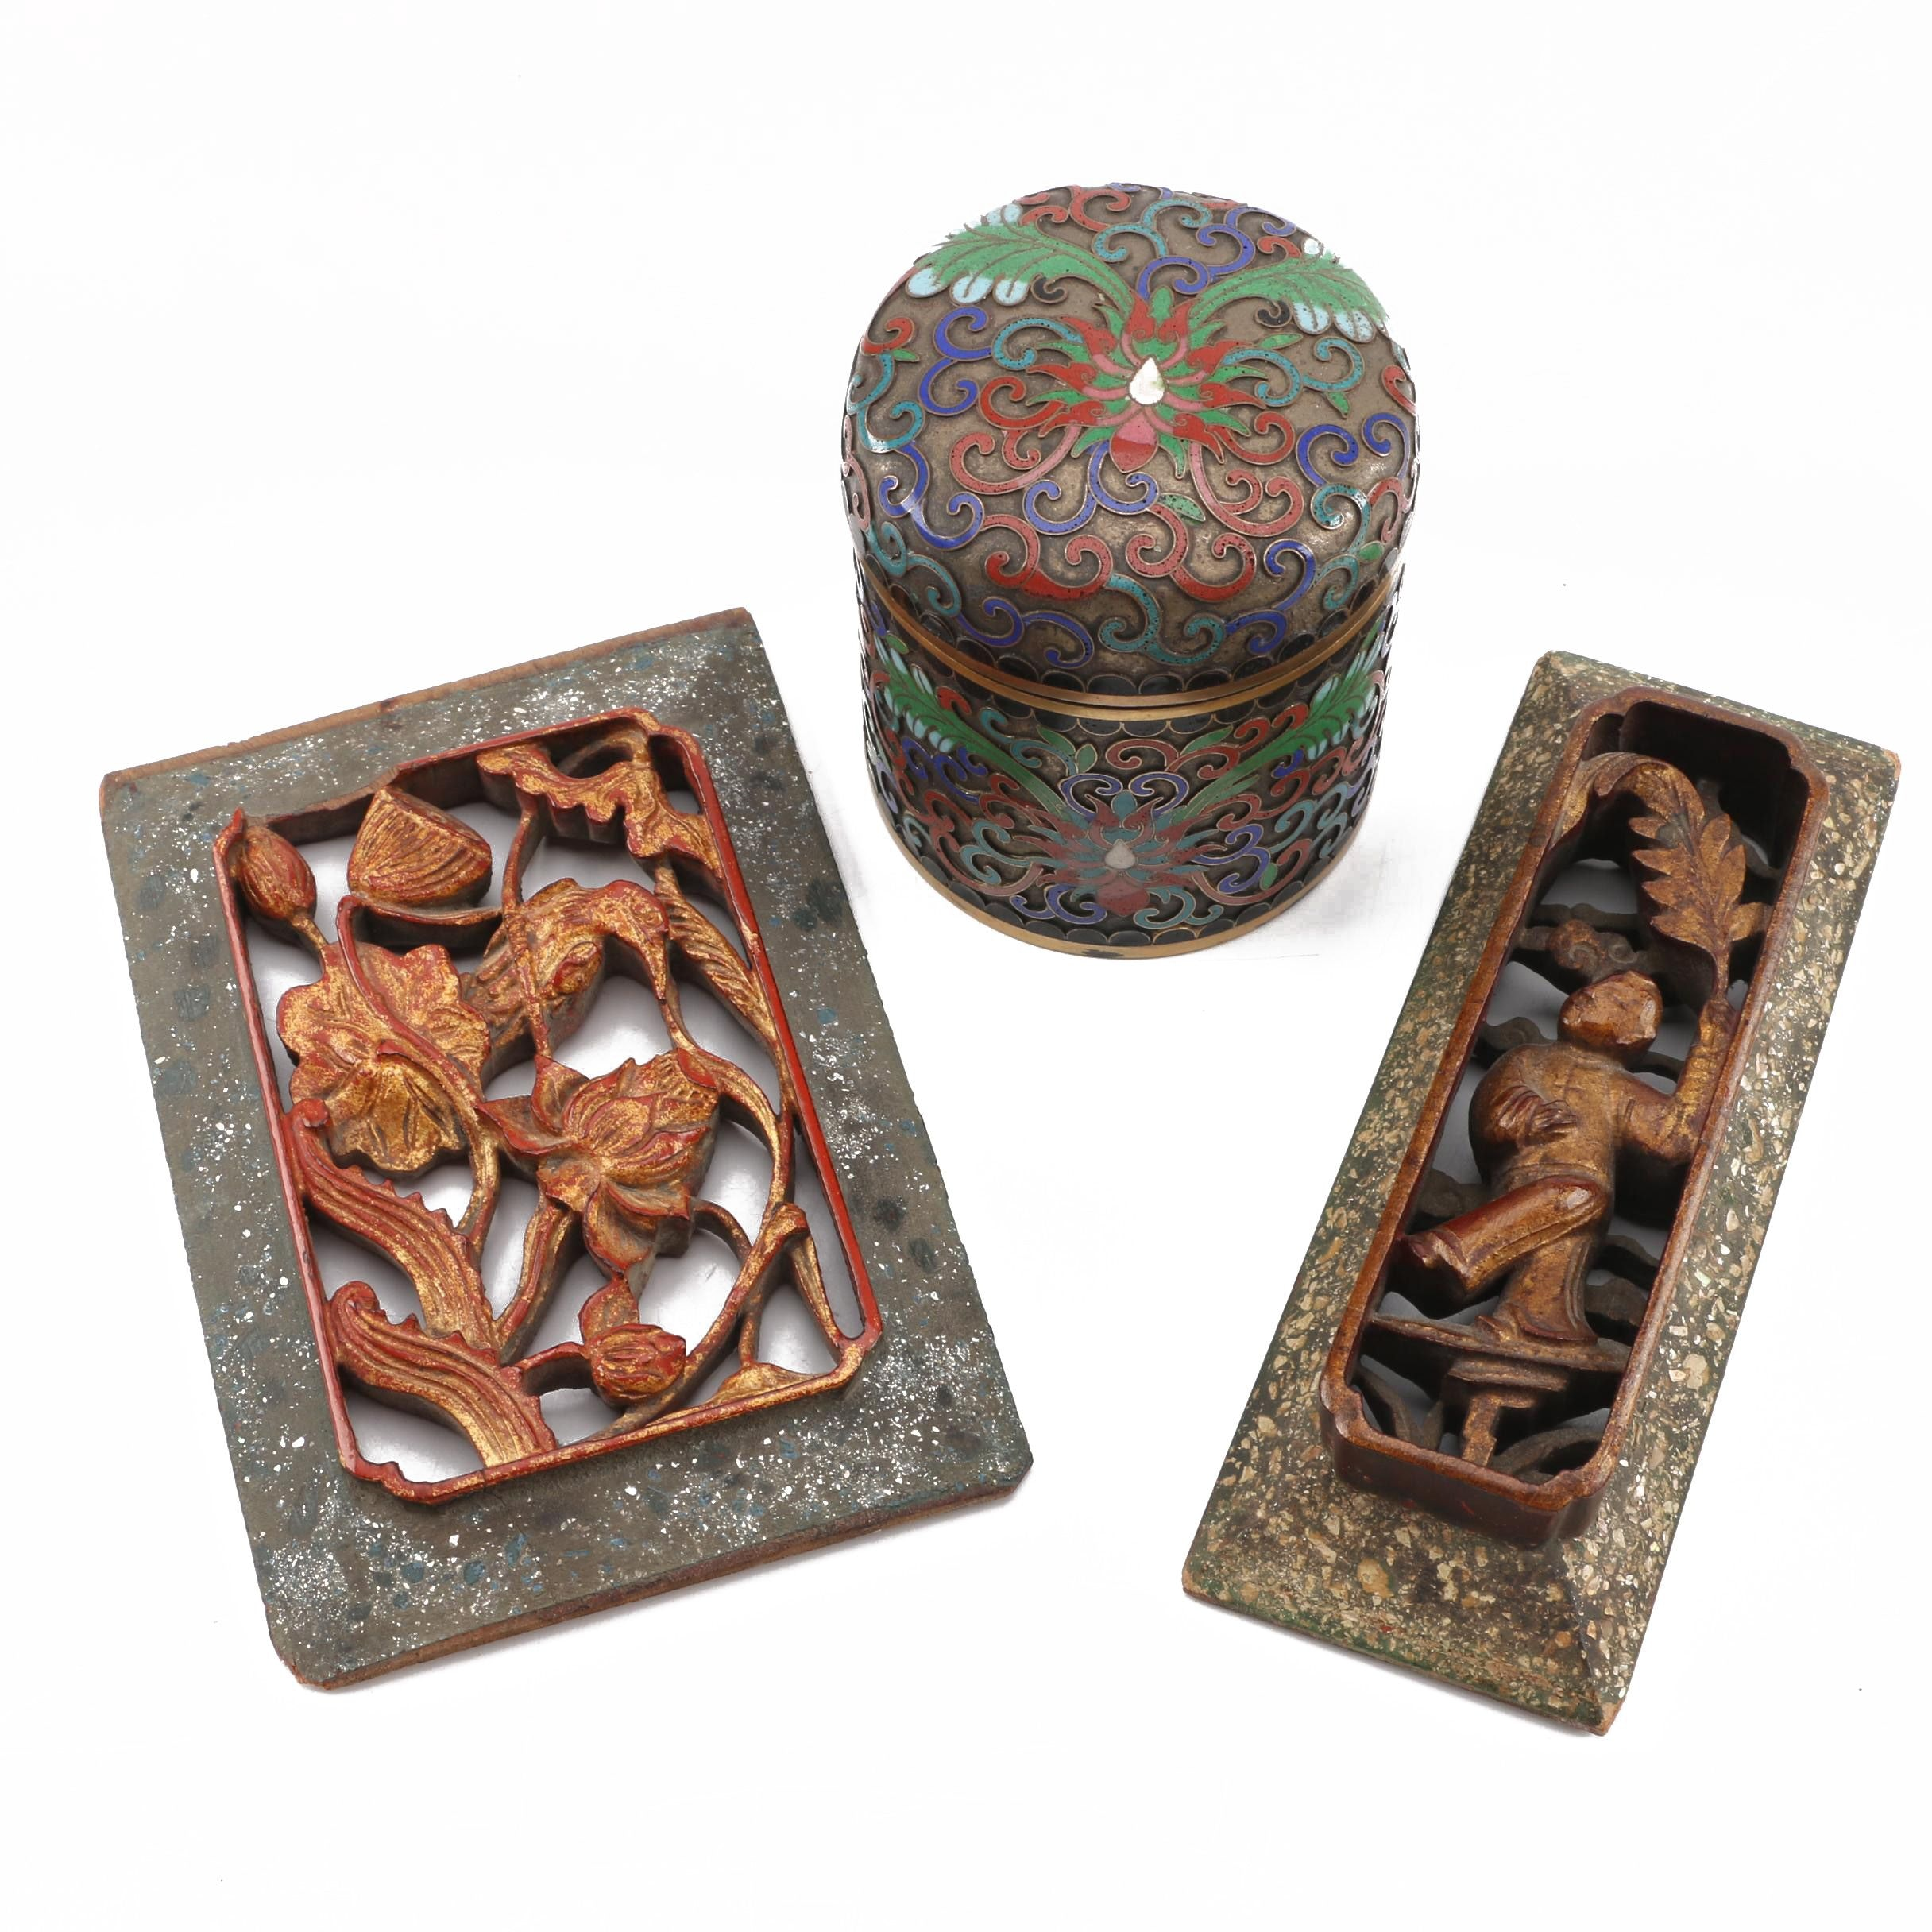 Vintage Chinese Cloisonne Jar and Carved Wall Plaques